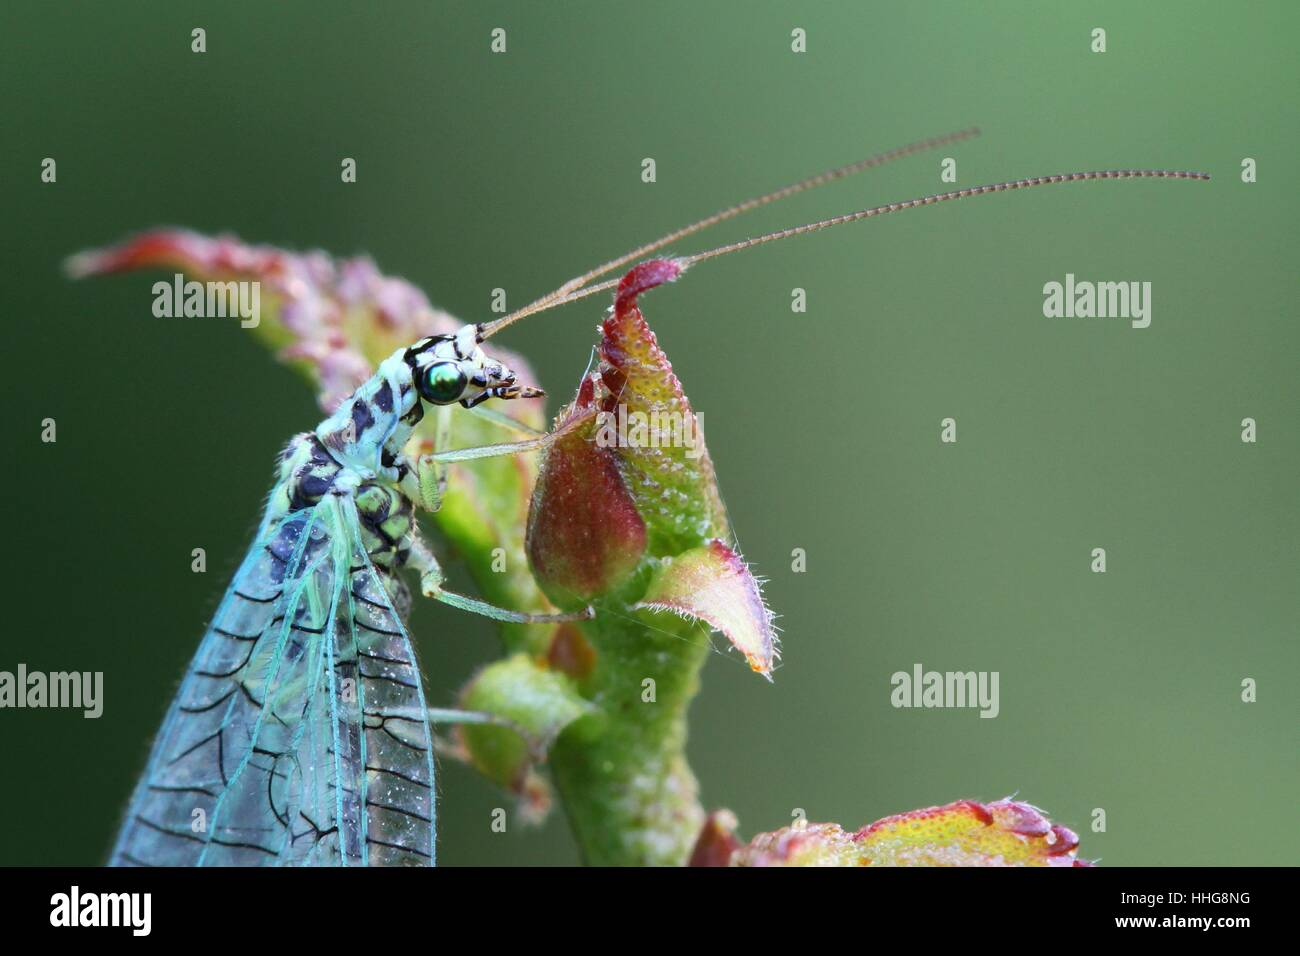 Green lacewing,  beneficial predator feeding on aphids - Stock Image